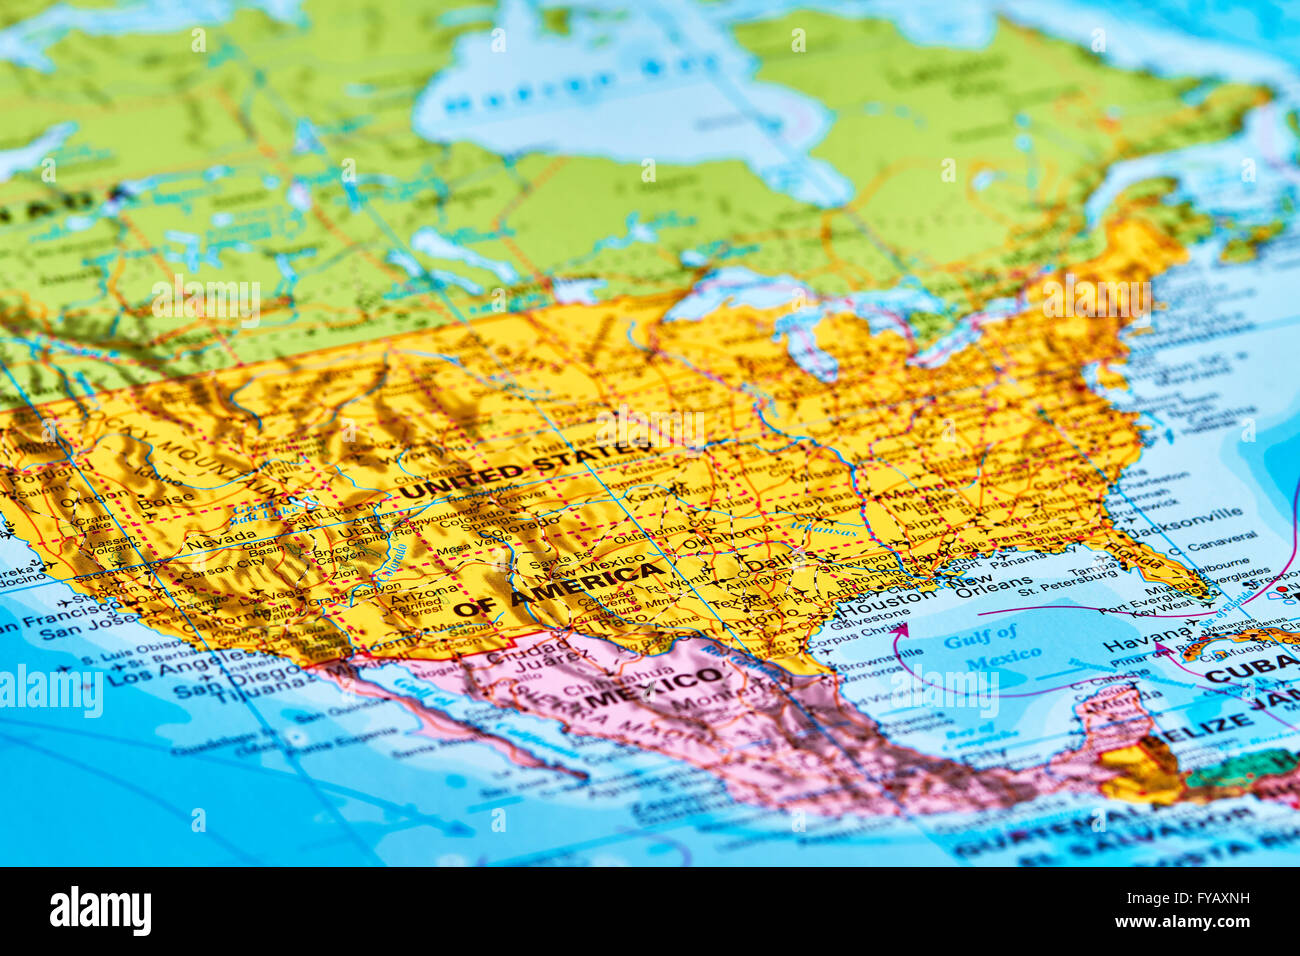 United States of America on the World Map Stock Photo: 102888061 - Alamy